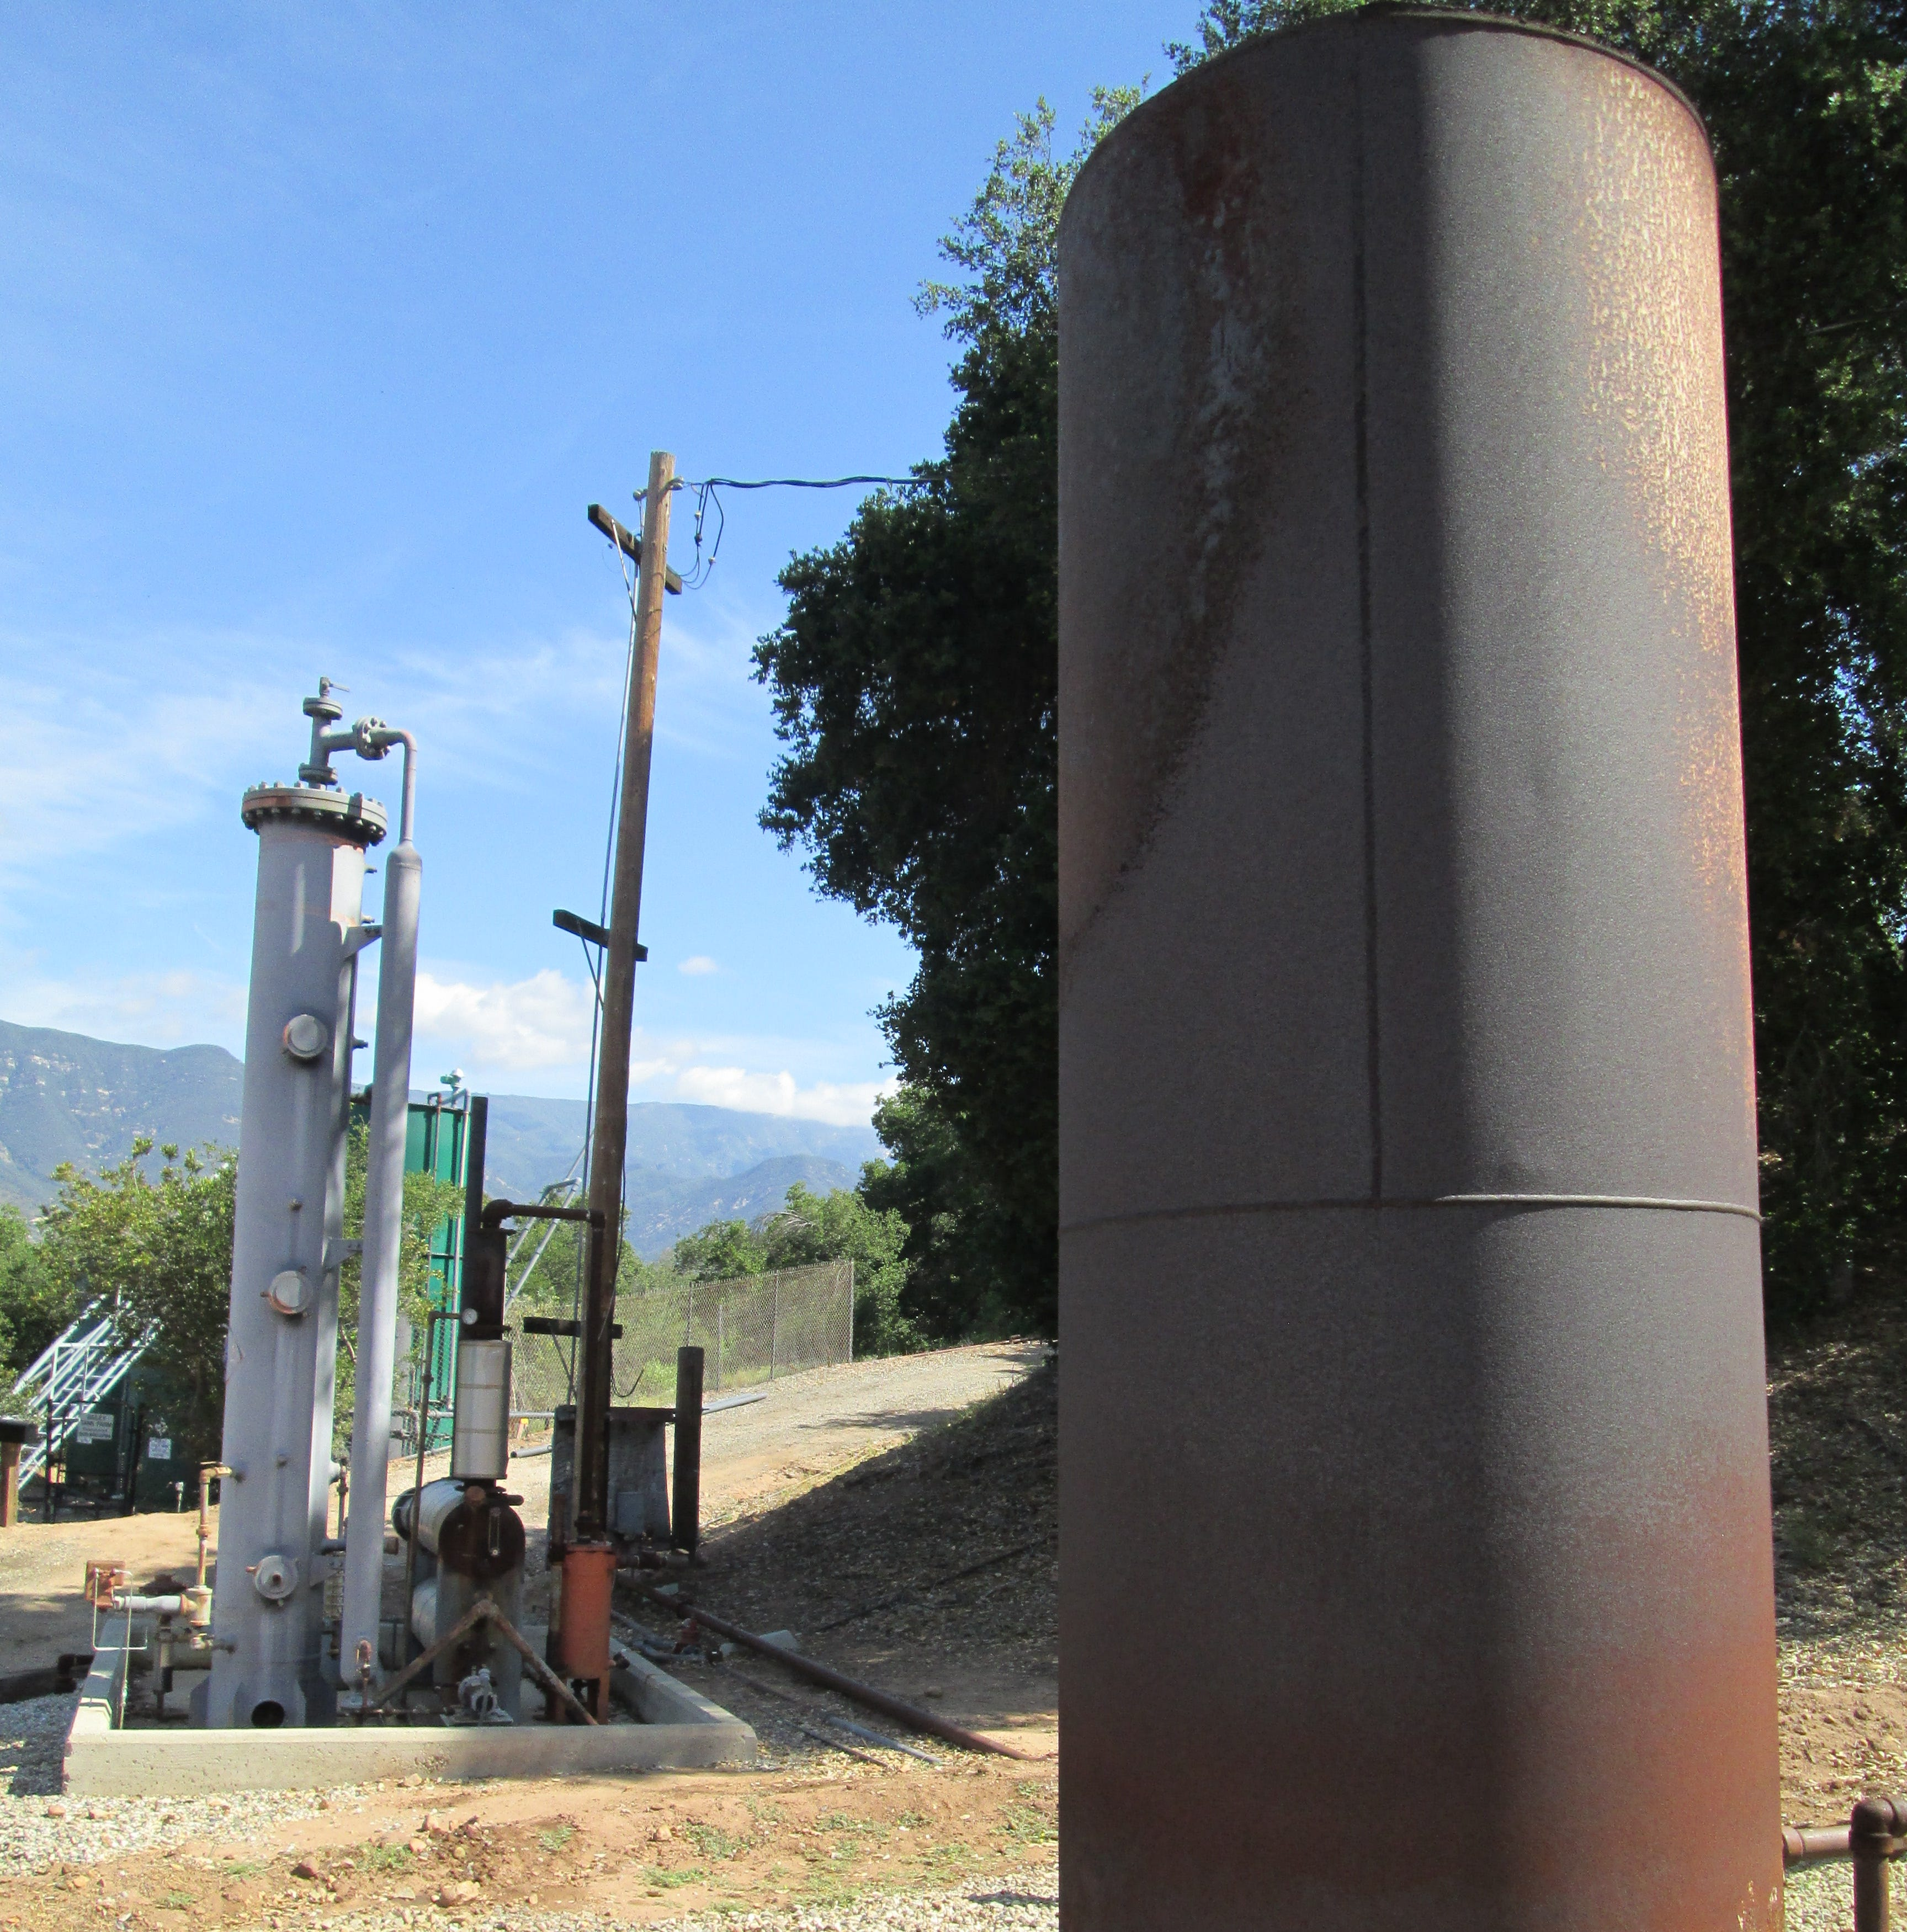 Ojai loses bid to delay 20-year permit for oil operation as county board splits 3-2